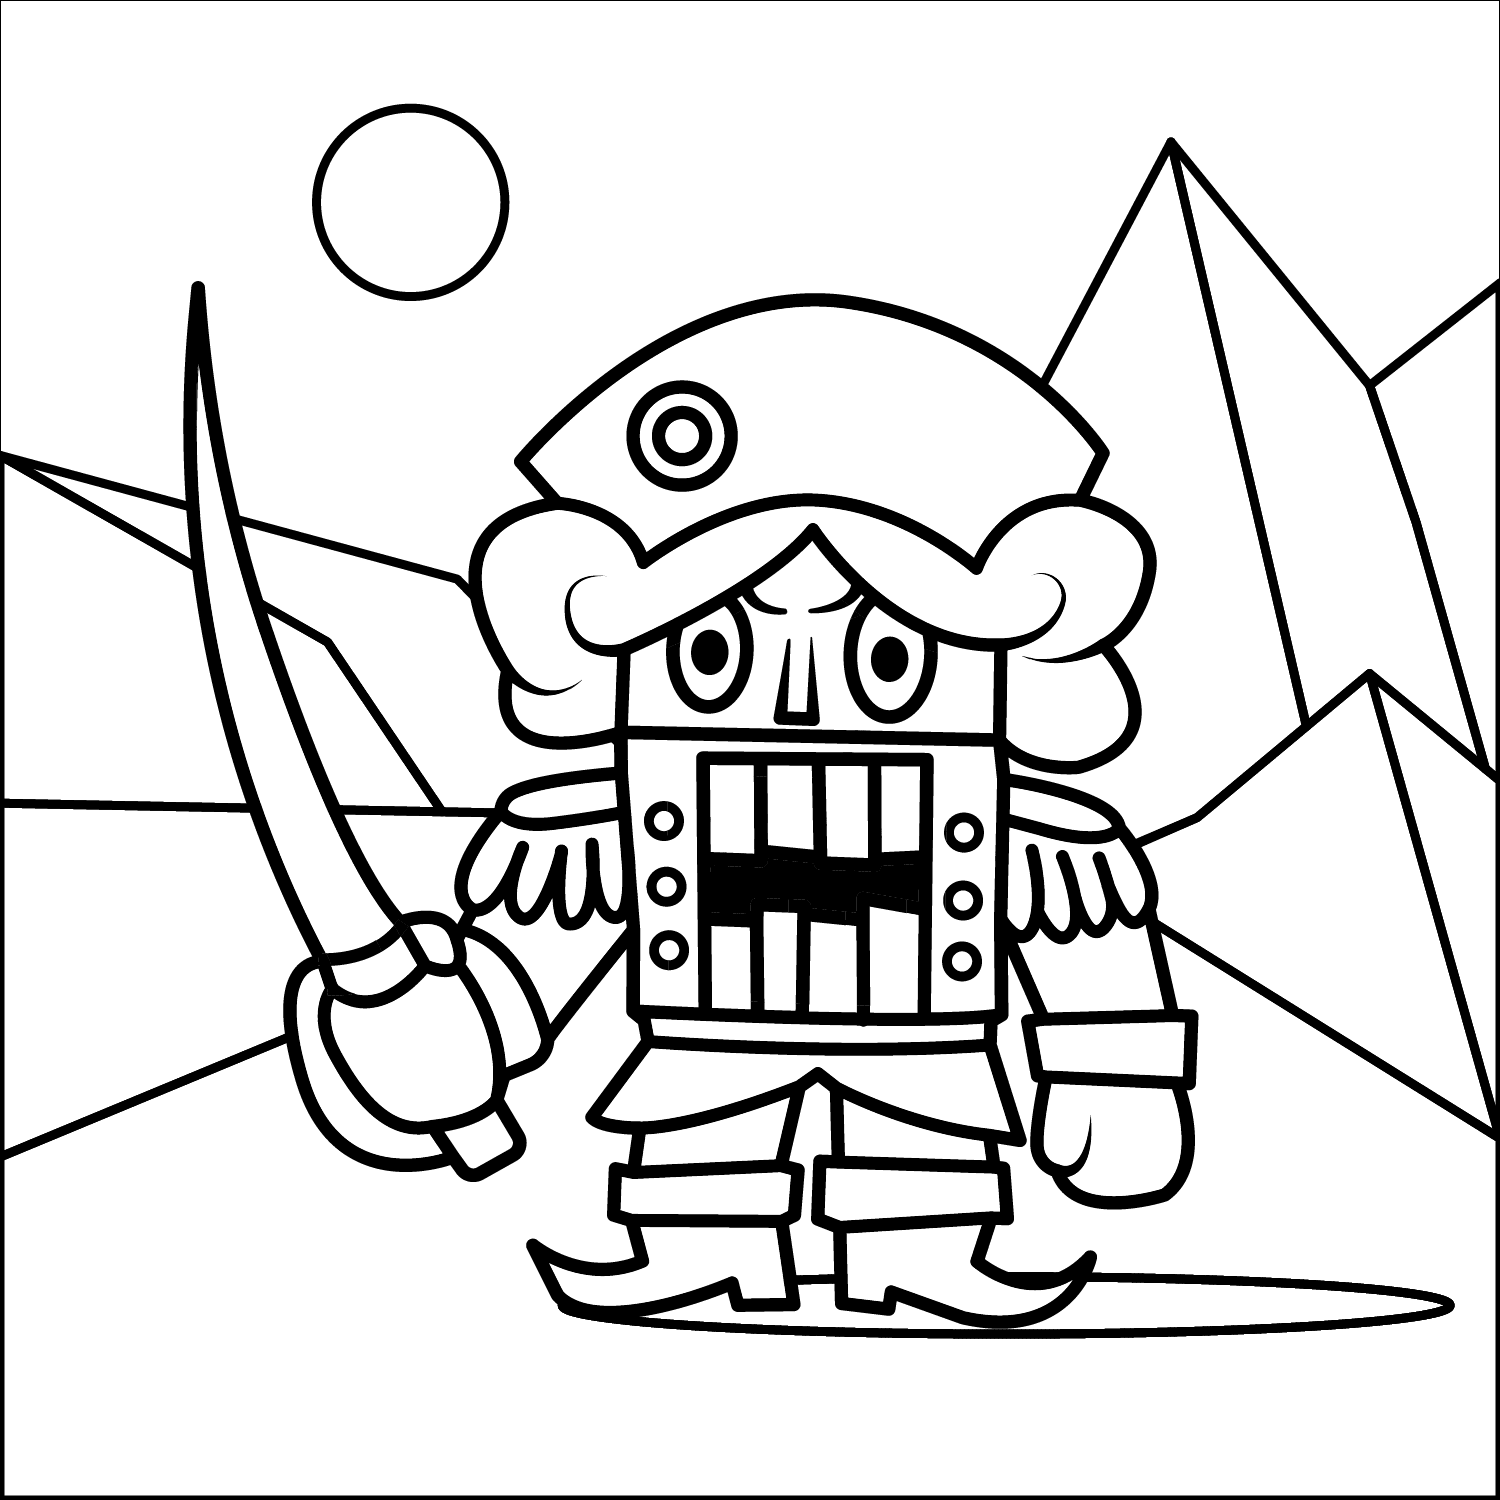 Nutcracker Coloring Page Coloring Book App Disney Cartoon Characters Disney Coloring Pages